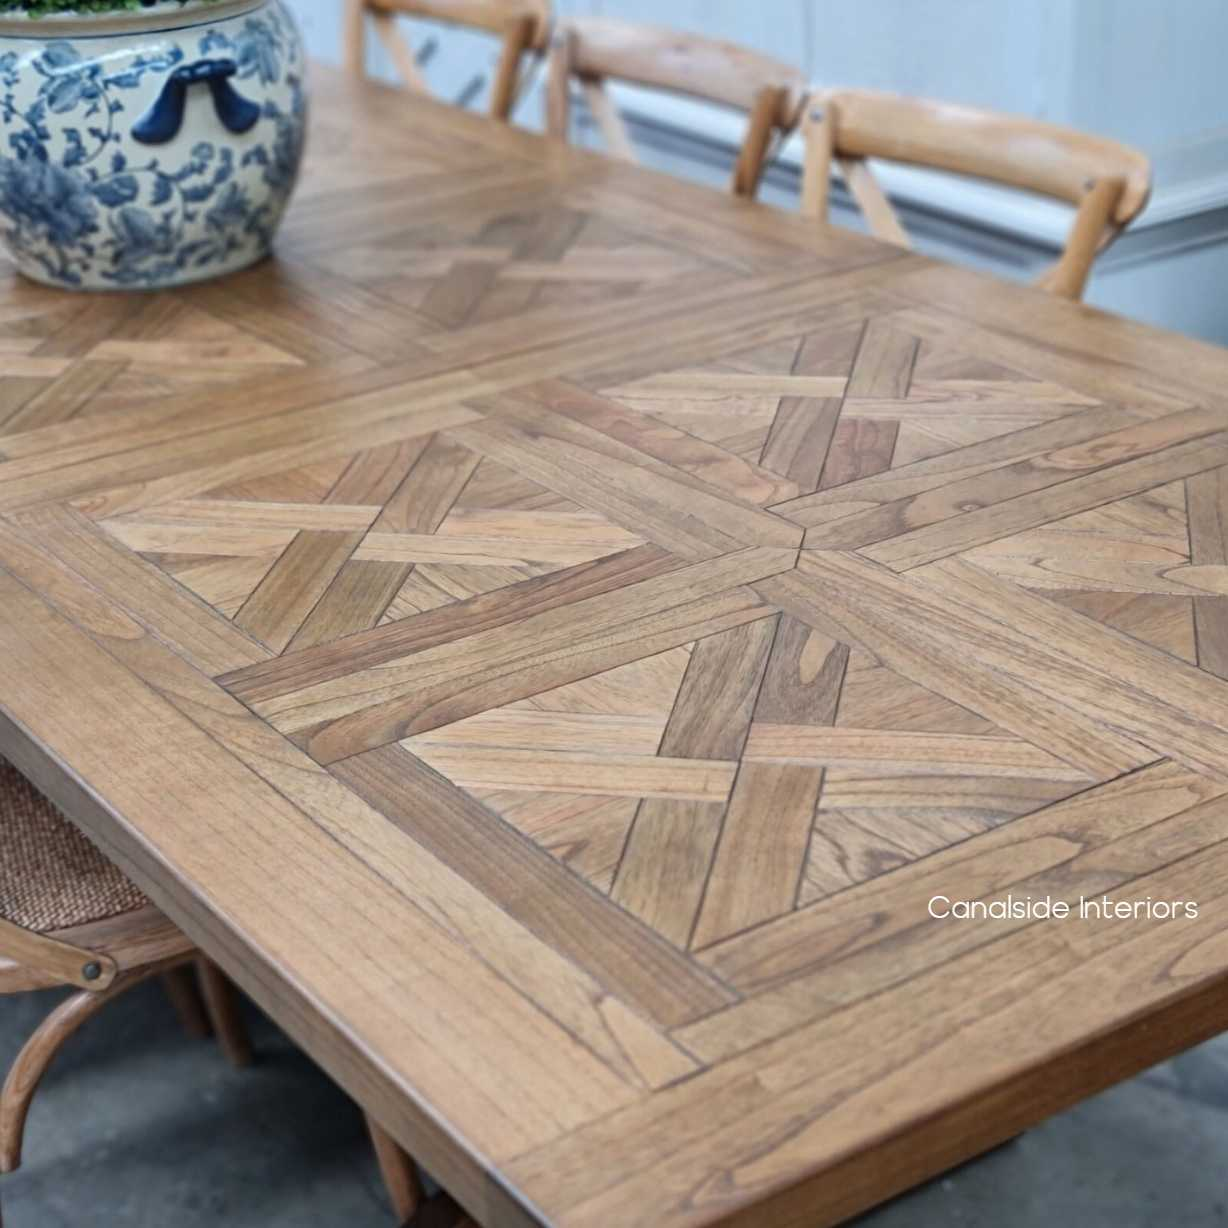 Stamford Parquetry Double Extension Dining Table, tables, extension tables, hamptons, hamptons table, provincial, plantation, dining tables, trestle base, dining room